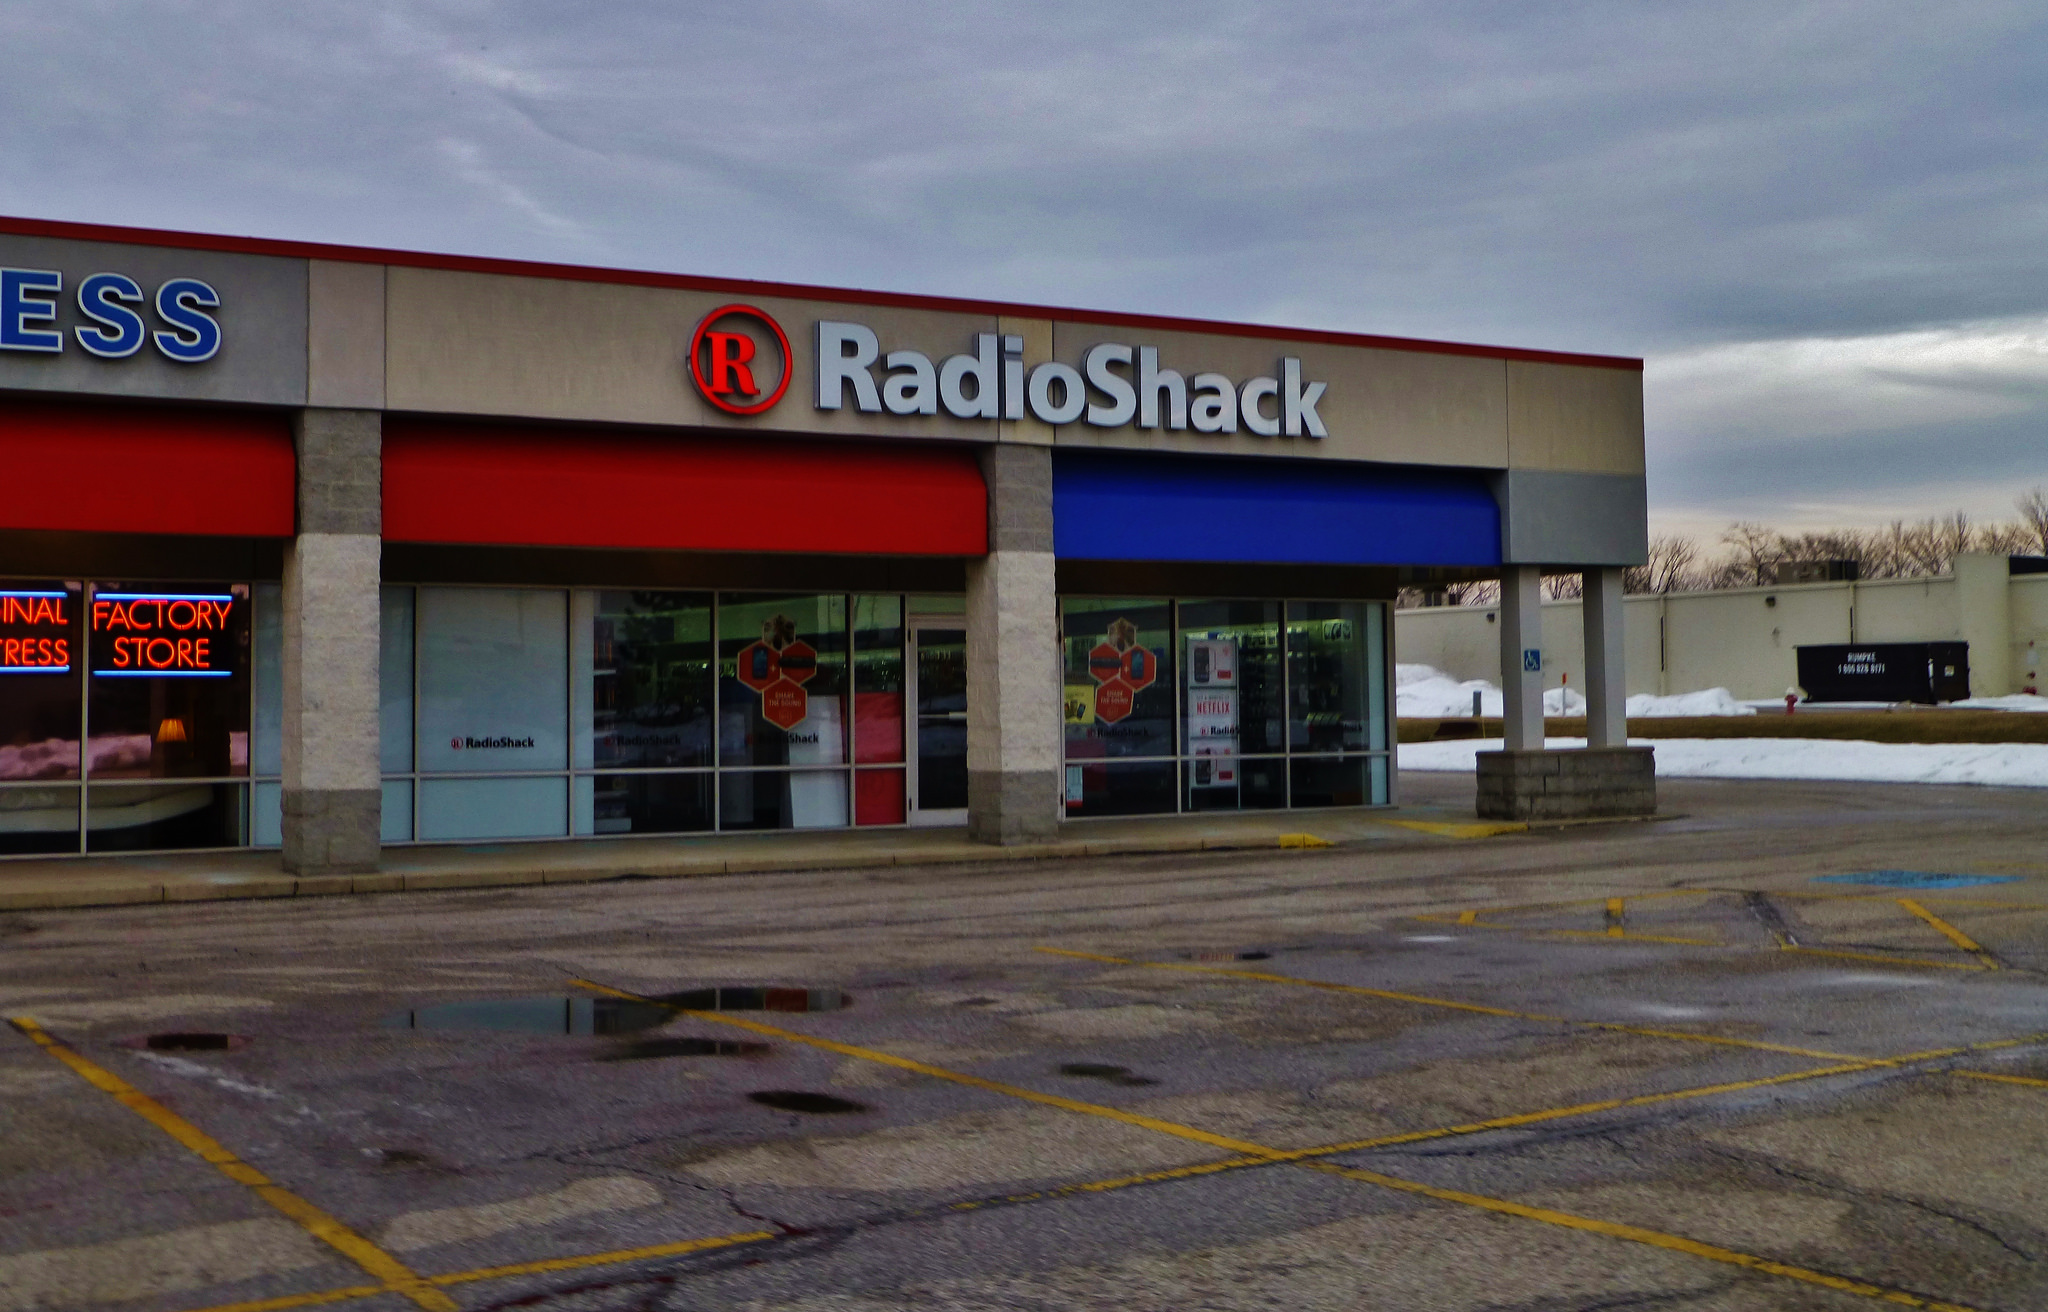 RadioShack will close over 1,700 stores following bankruptcy filing